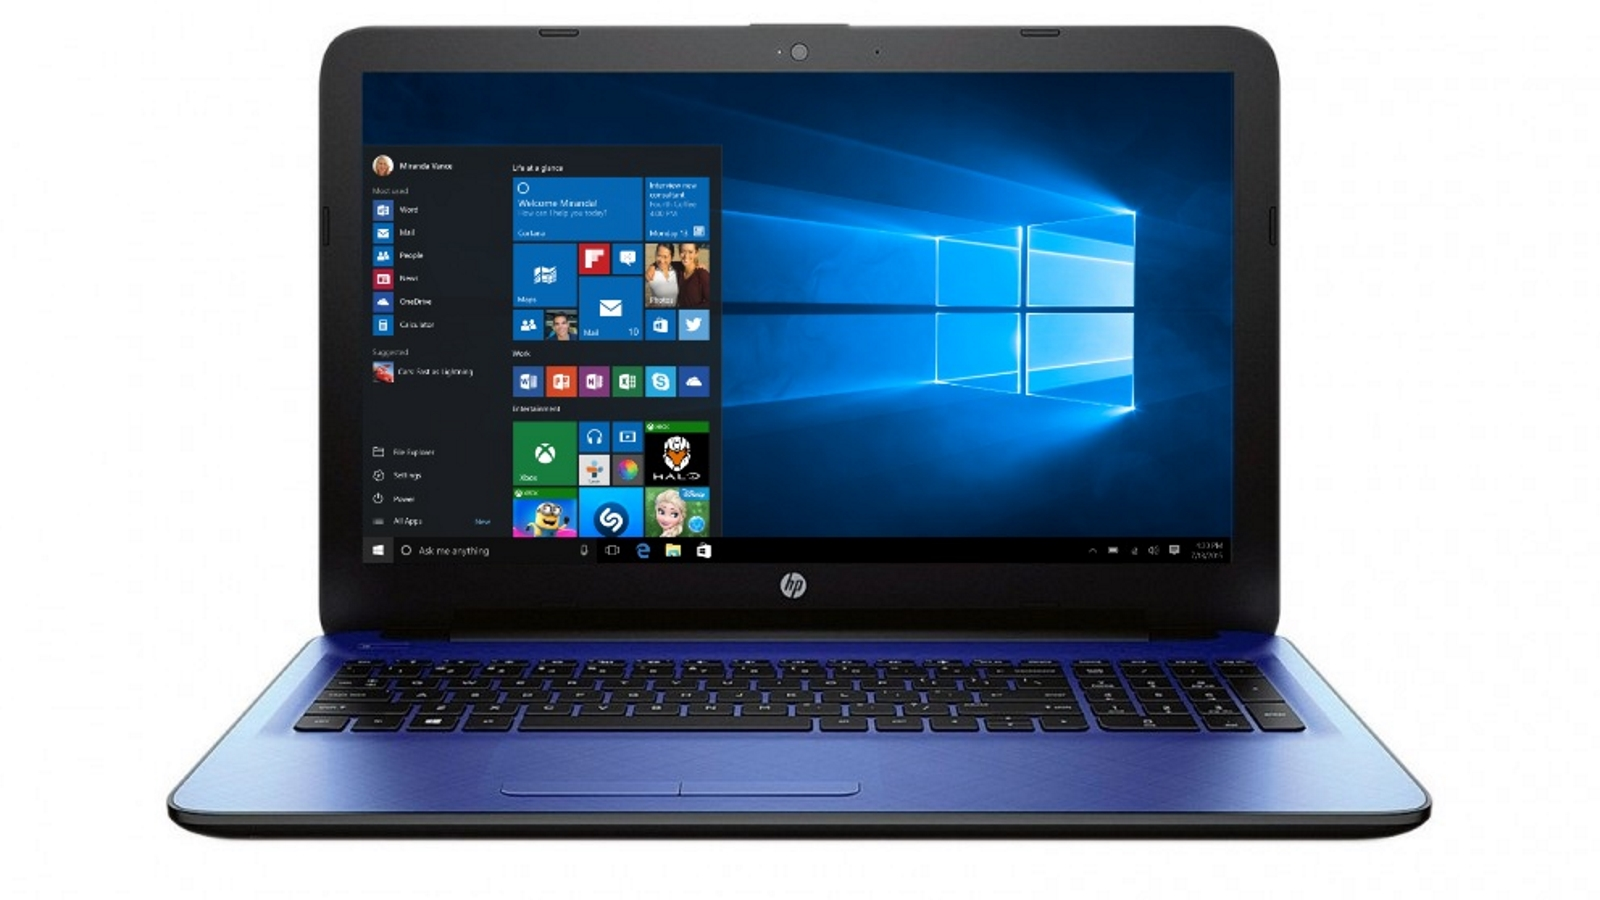 hp 15 6 laptop 4gb 500gb windows 10 blue p1a91ua aba ebay. Black Bedroom Furniture Sets. Home Design Ideas